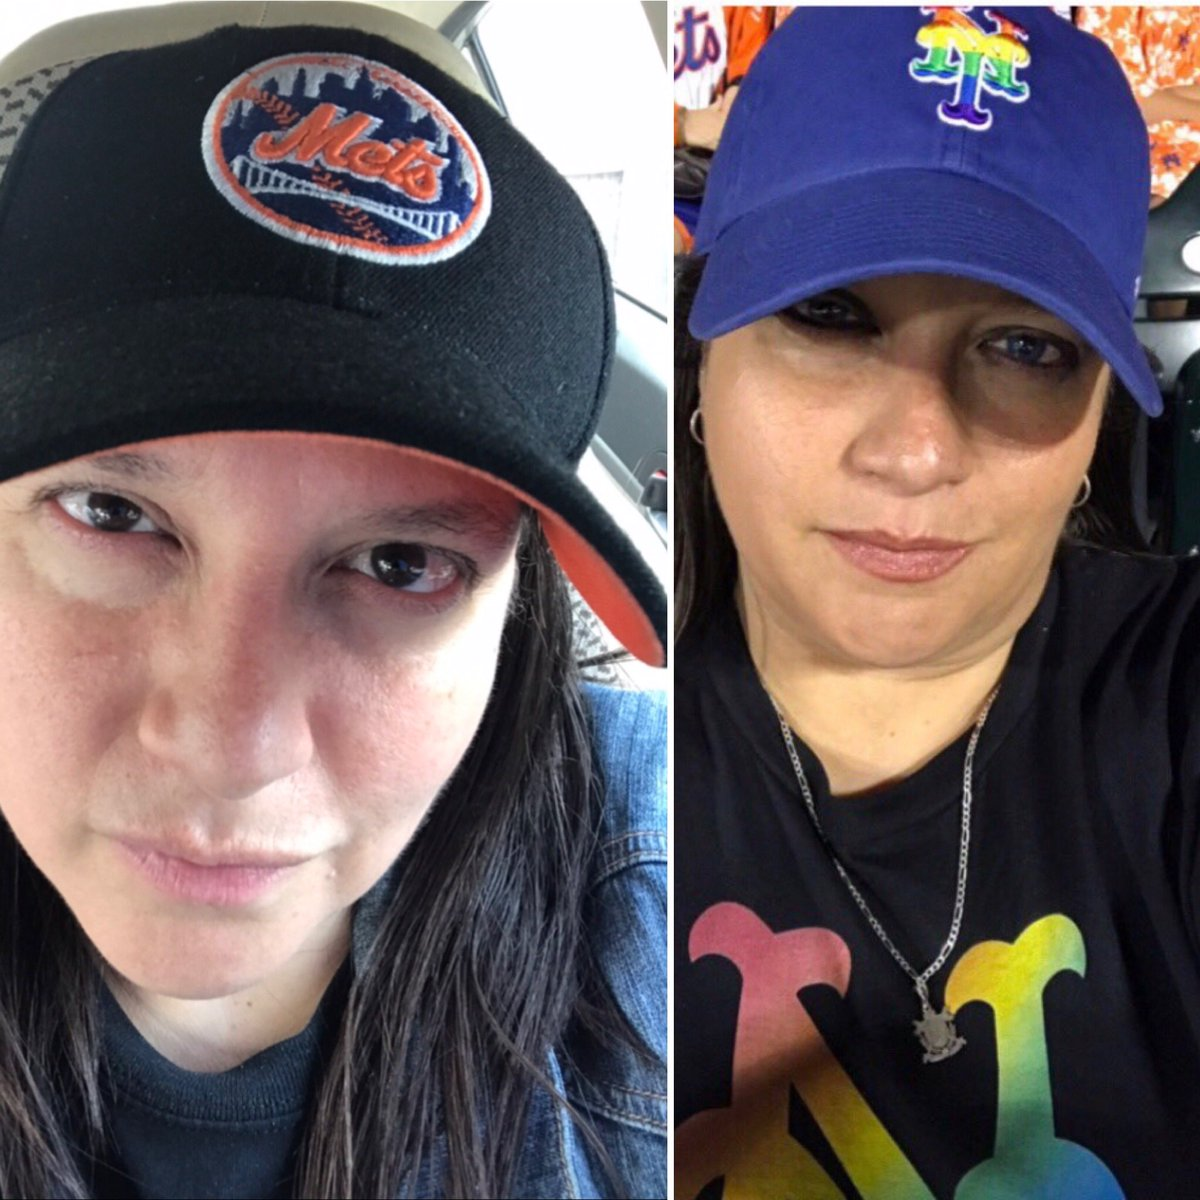 @Mets #NationalHatDay  #LGM  🧡⚾️💙 These are my 2 favorite #Mets hats.